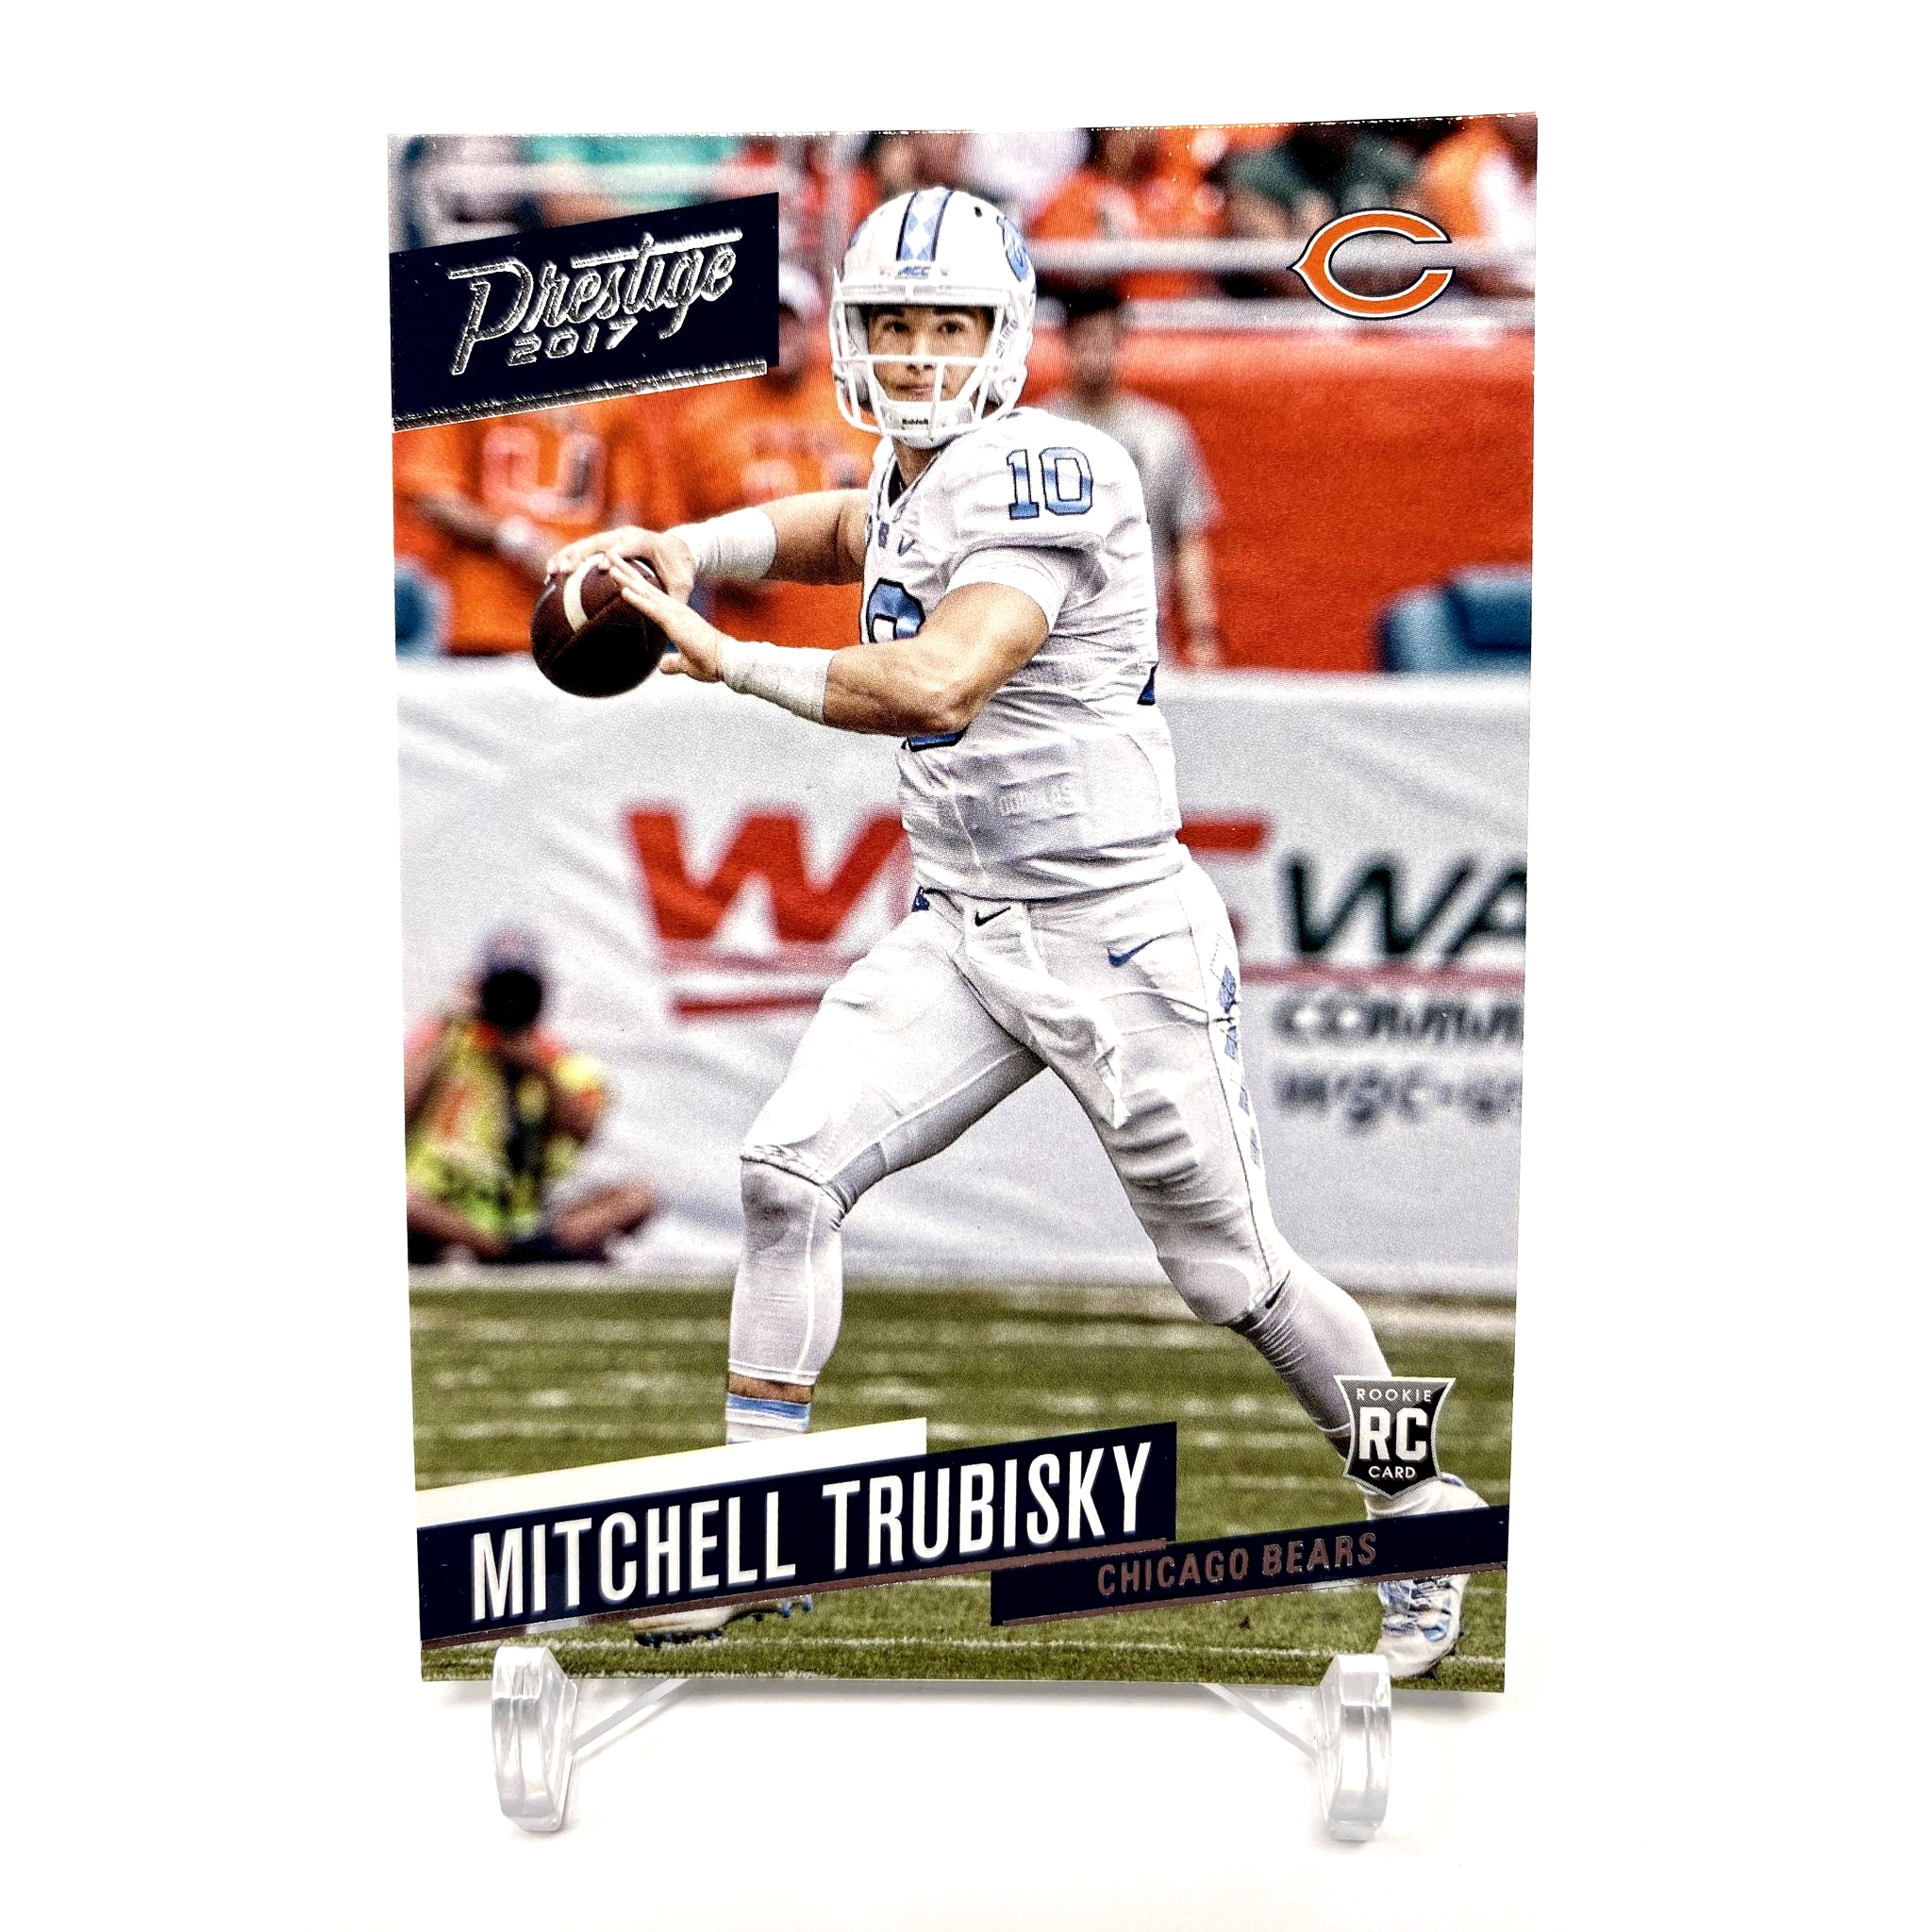 2017 Panini Prestige Mitchell Trubisky Rookie Card Chicago Bears